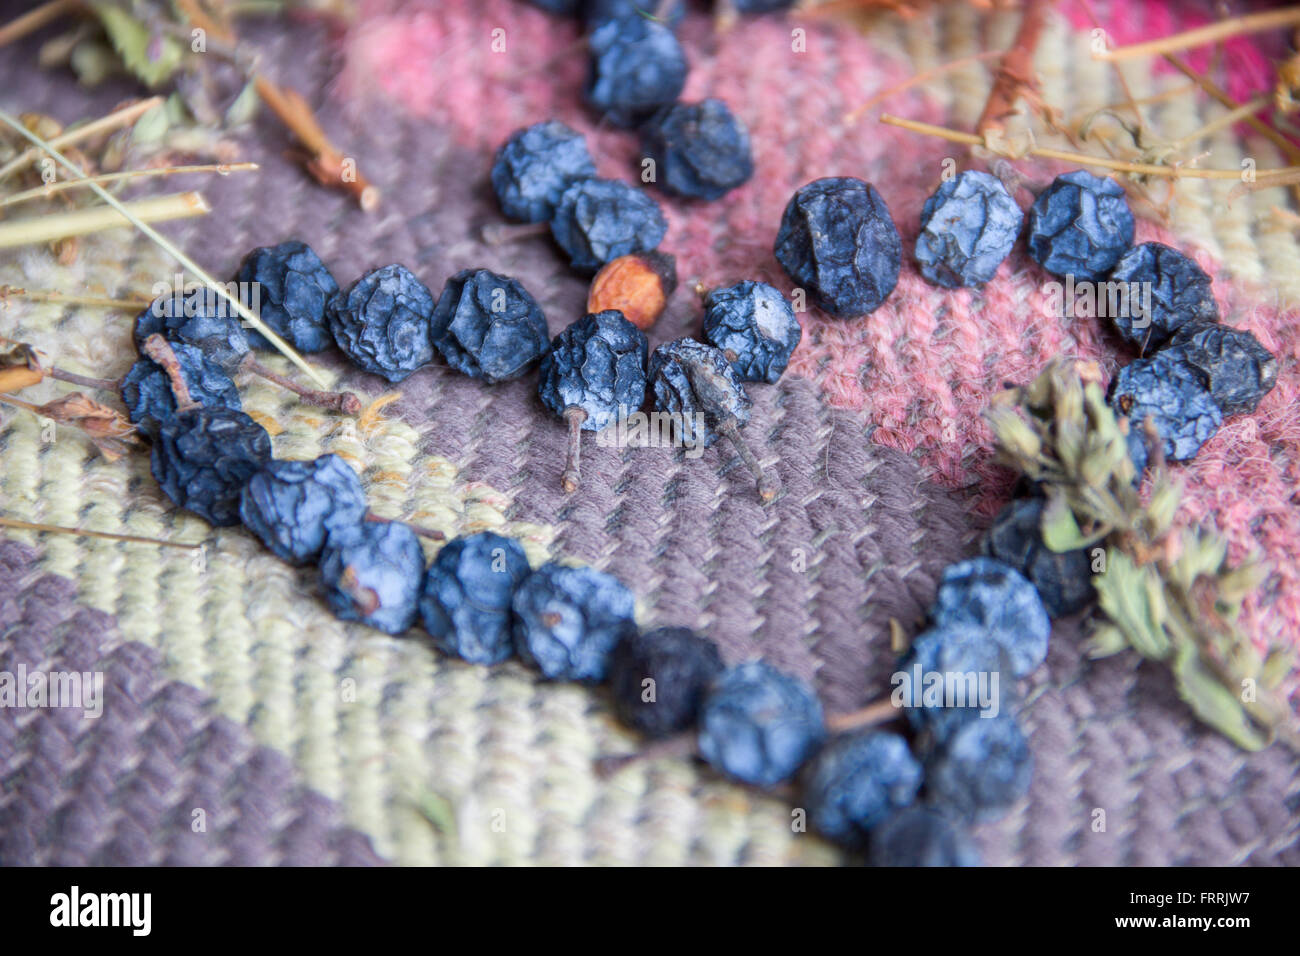 Dried blue berries on colorful ethnic in shape of heart. - Stock Image